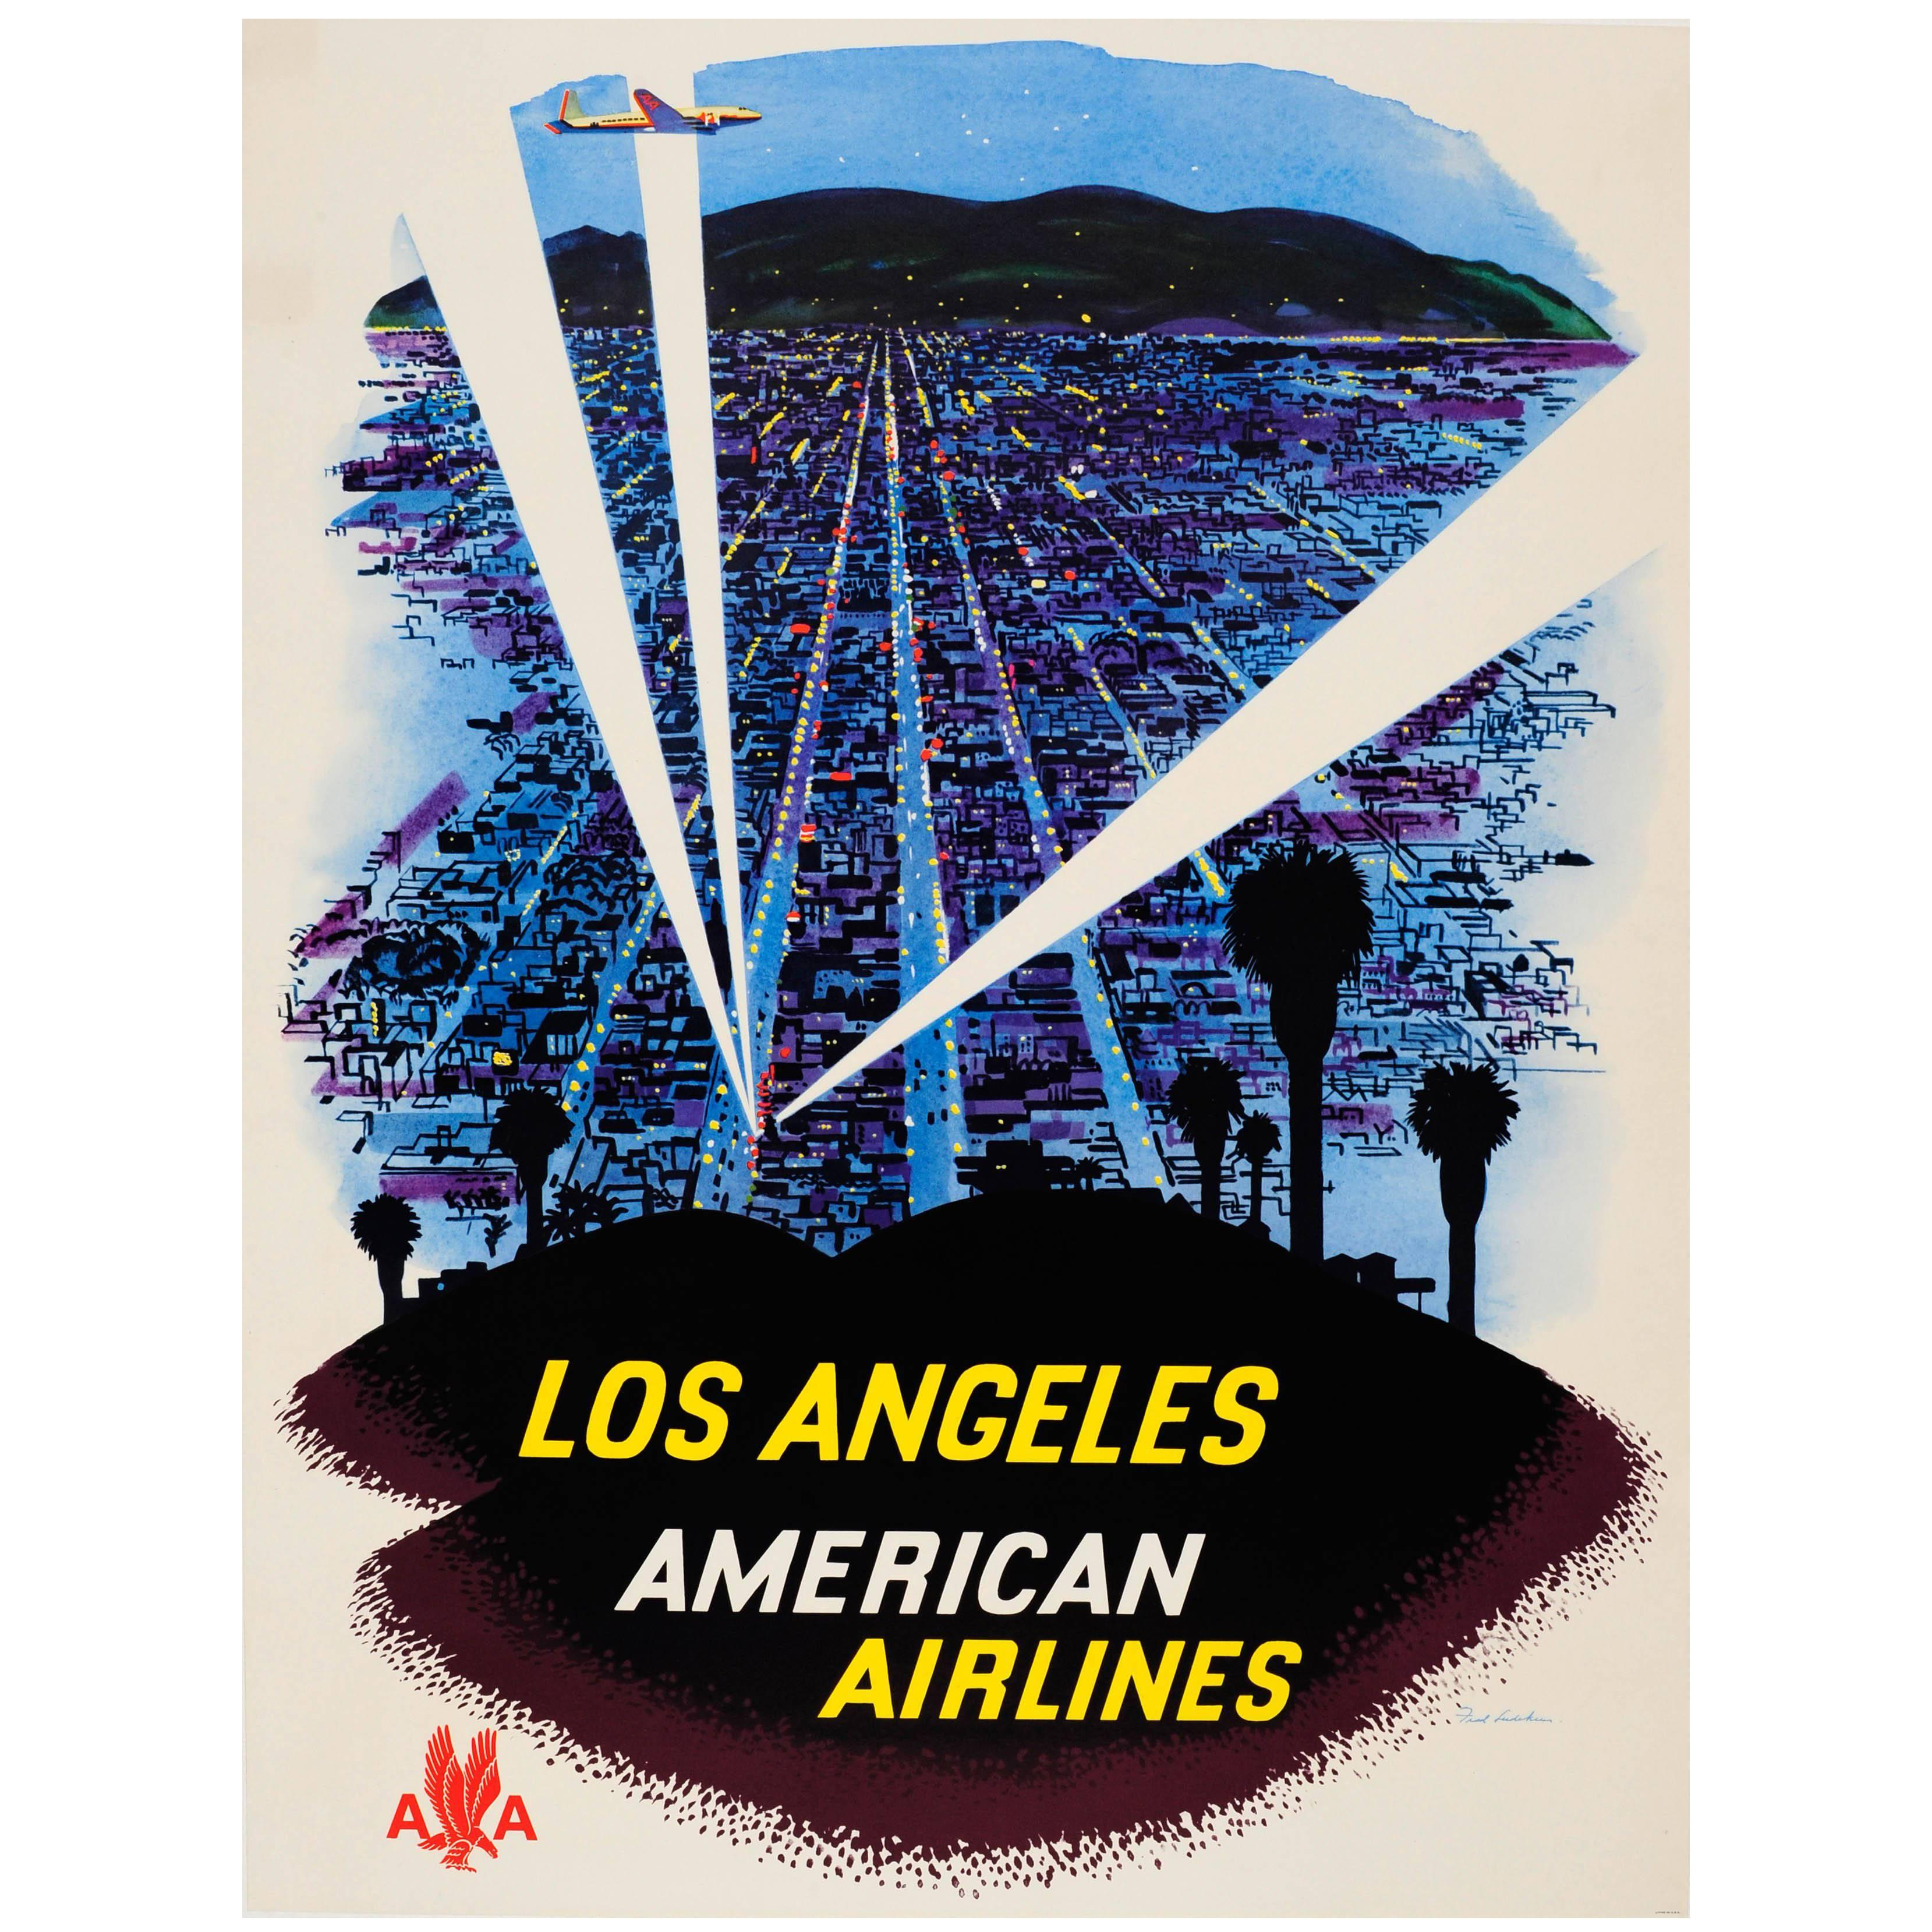 Original Vintage American Airlines Travel Advertising Poster for Los Angeles